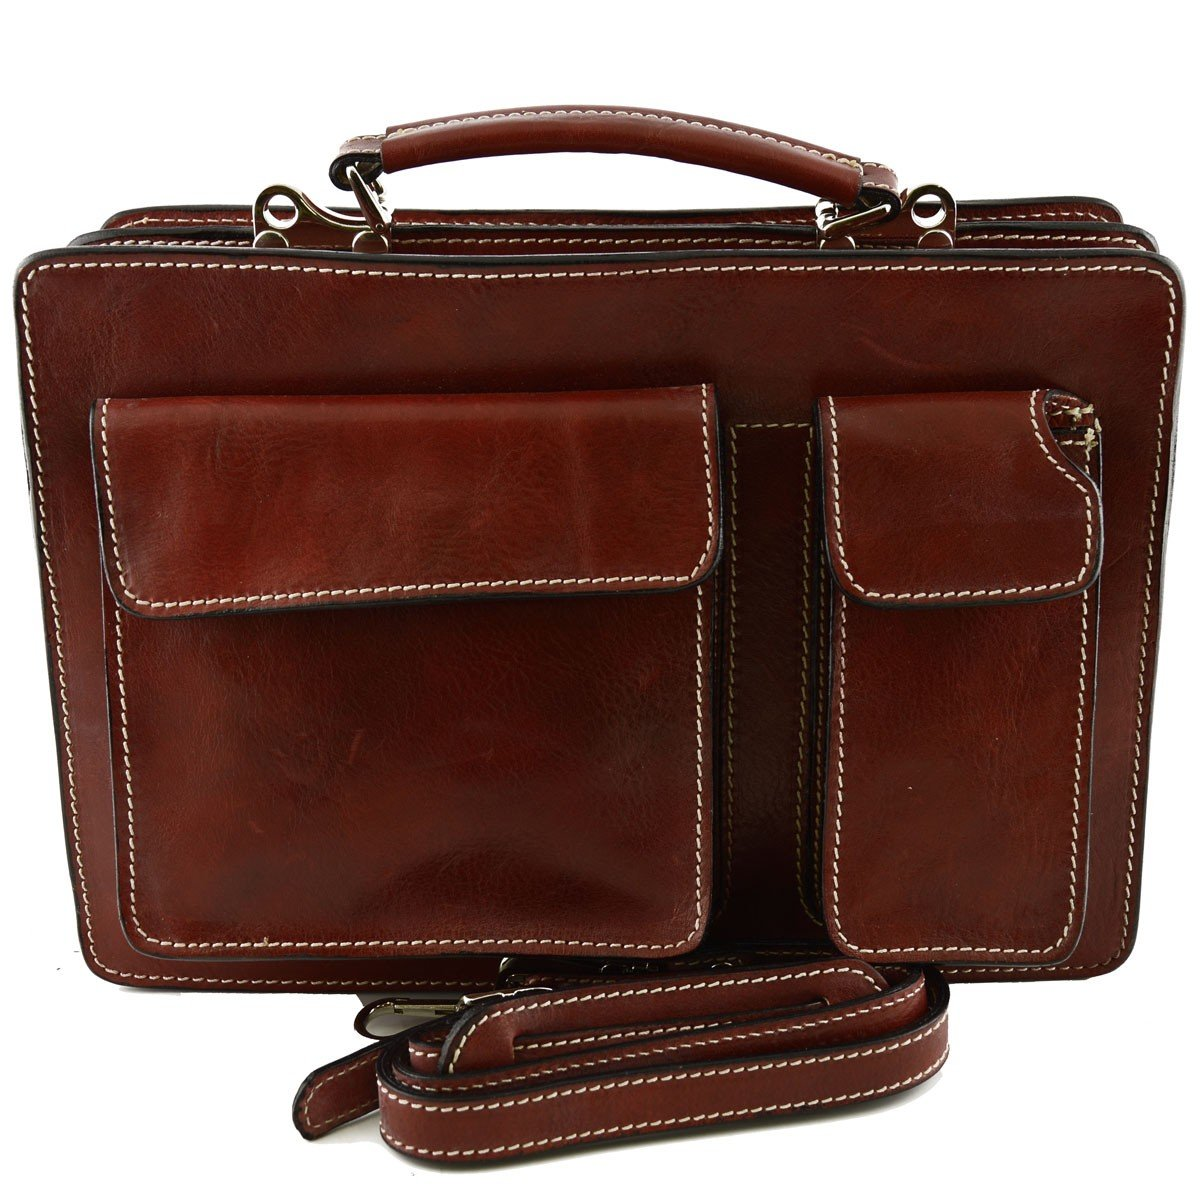 Made In Italy Genuine Leather Business Bag Mod. Small Color Red - Business Bag   B01N7Z66D3